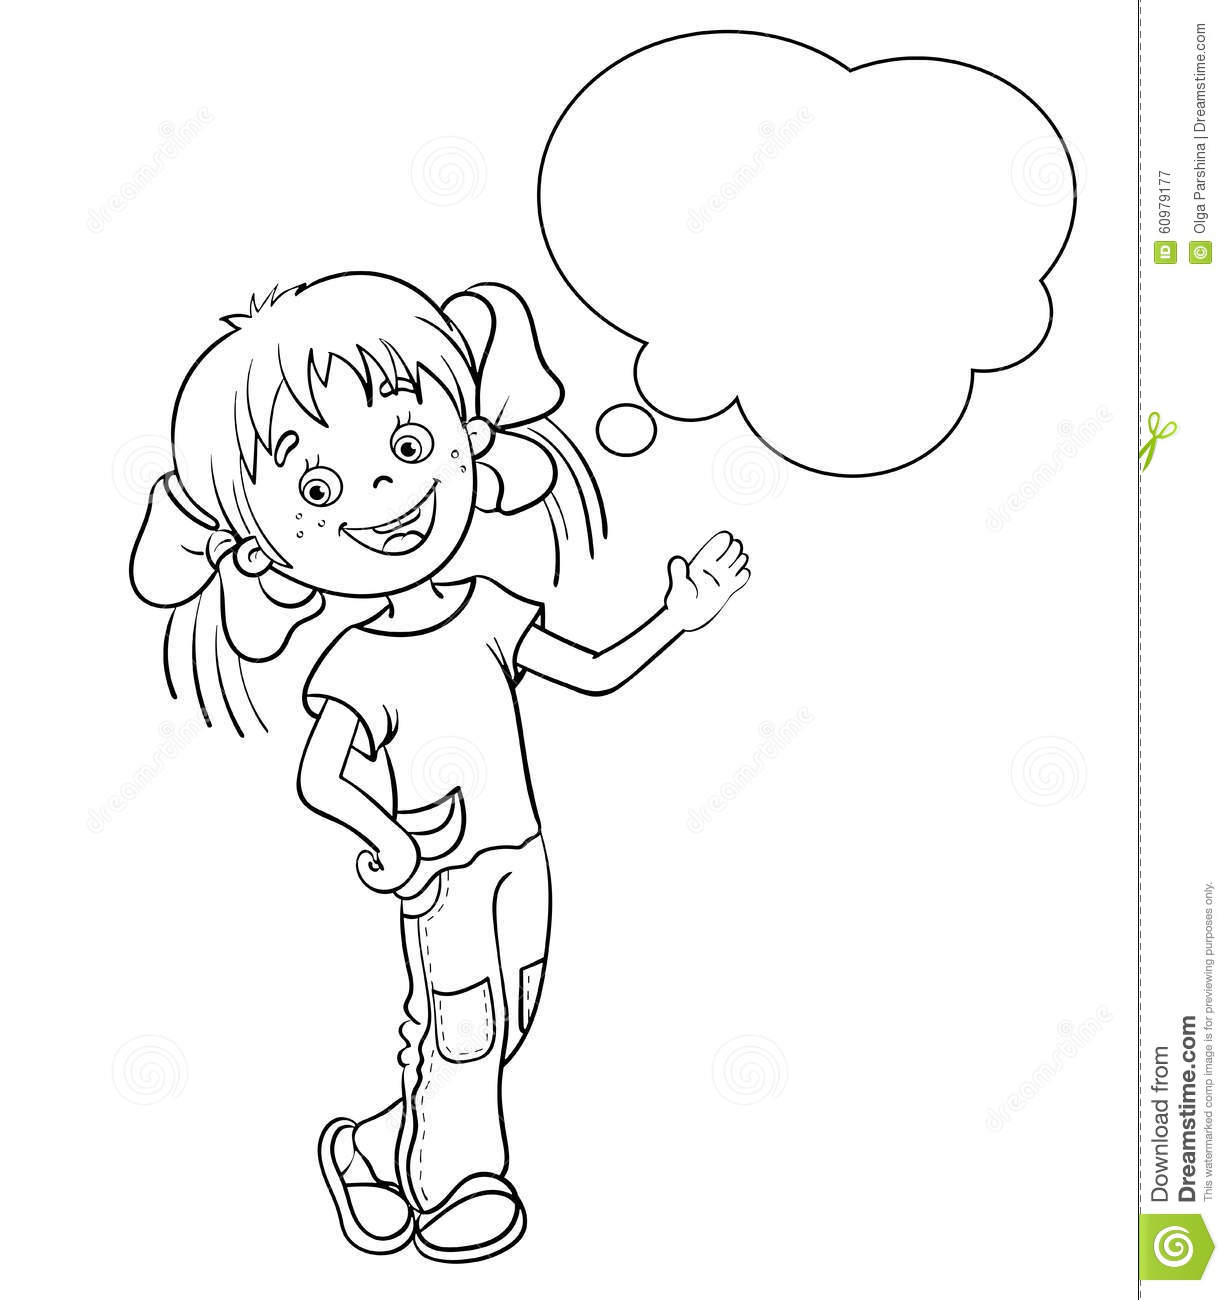 Coloring Page Outline Of A Cartoon Girl With Speech Bubble